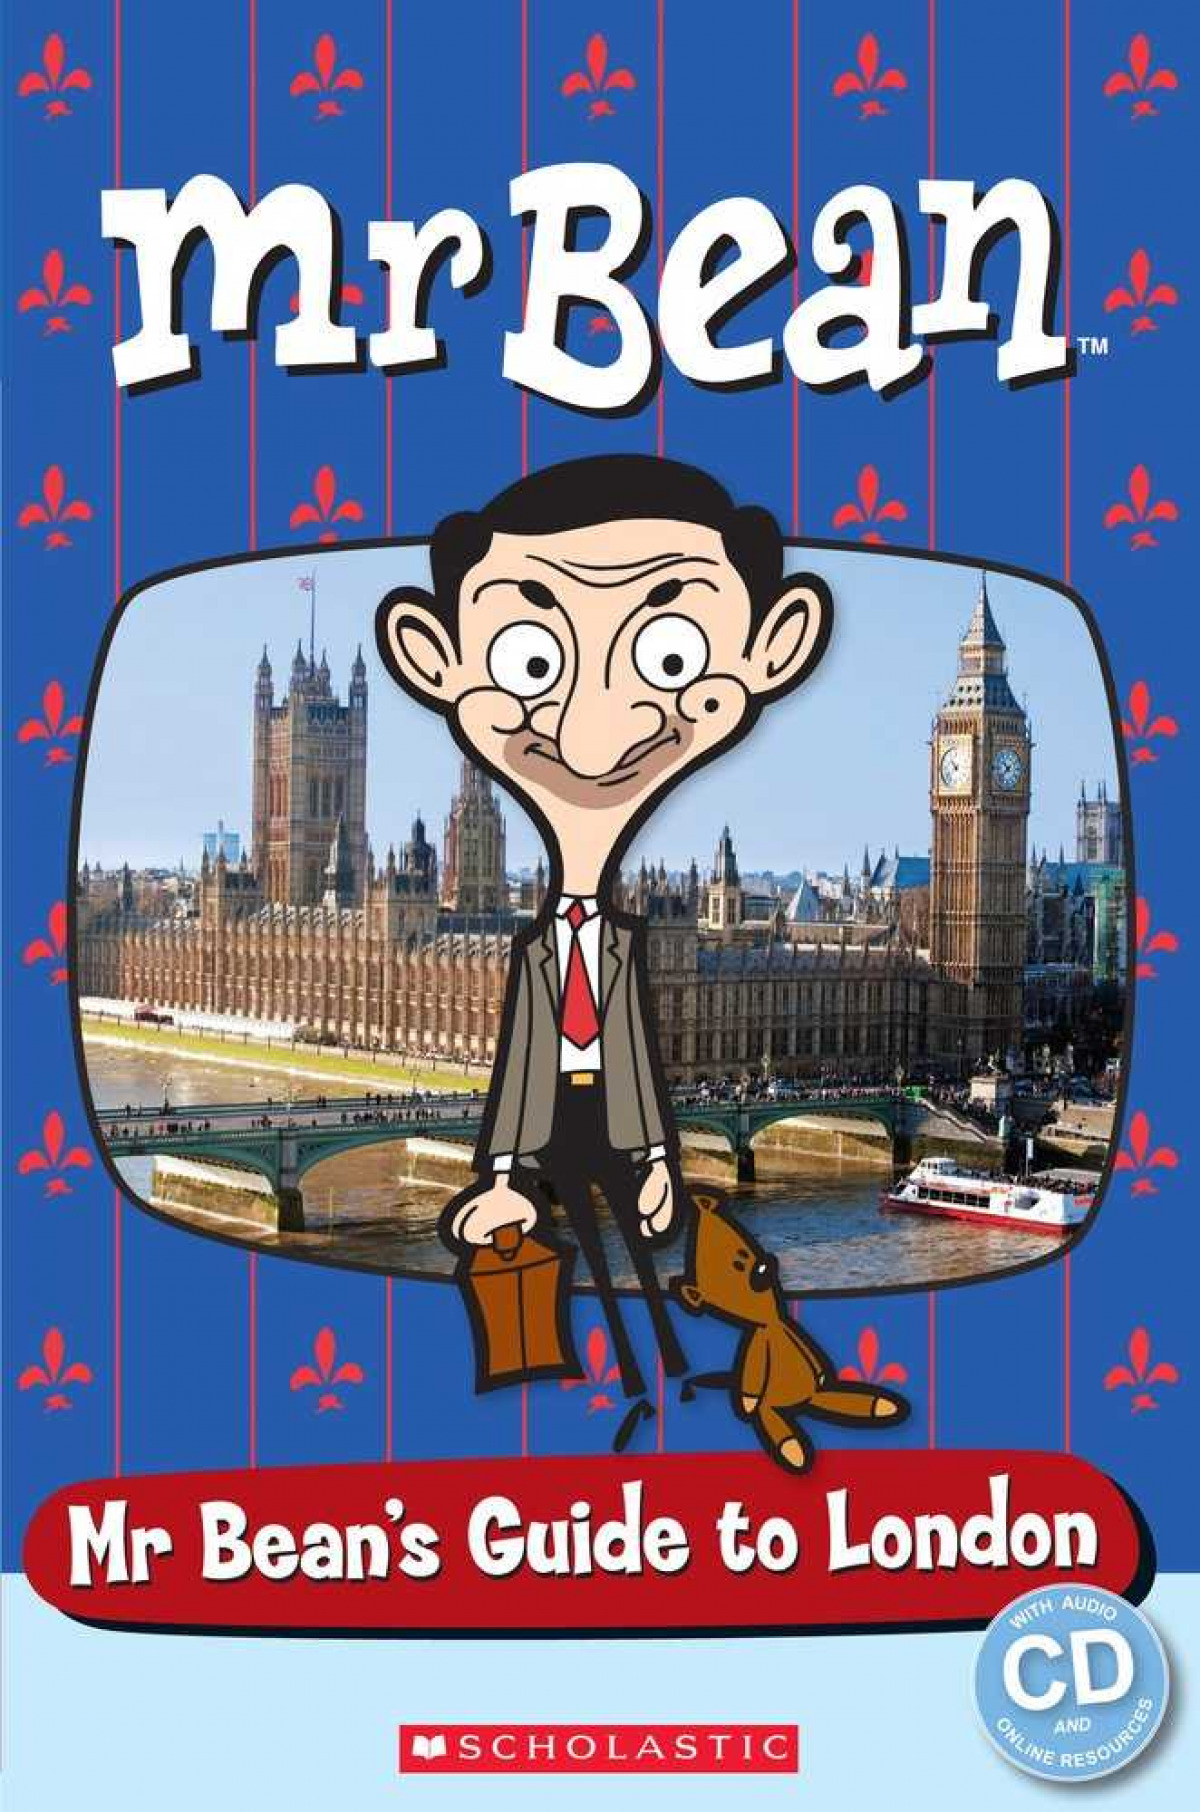 MR BEAN GUIDE TO LONDON